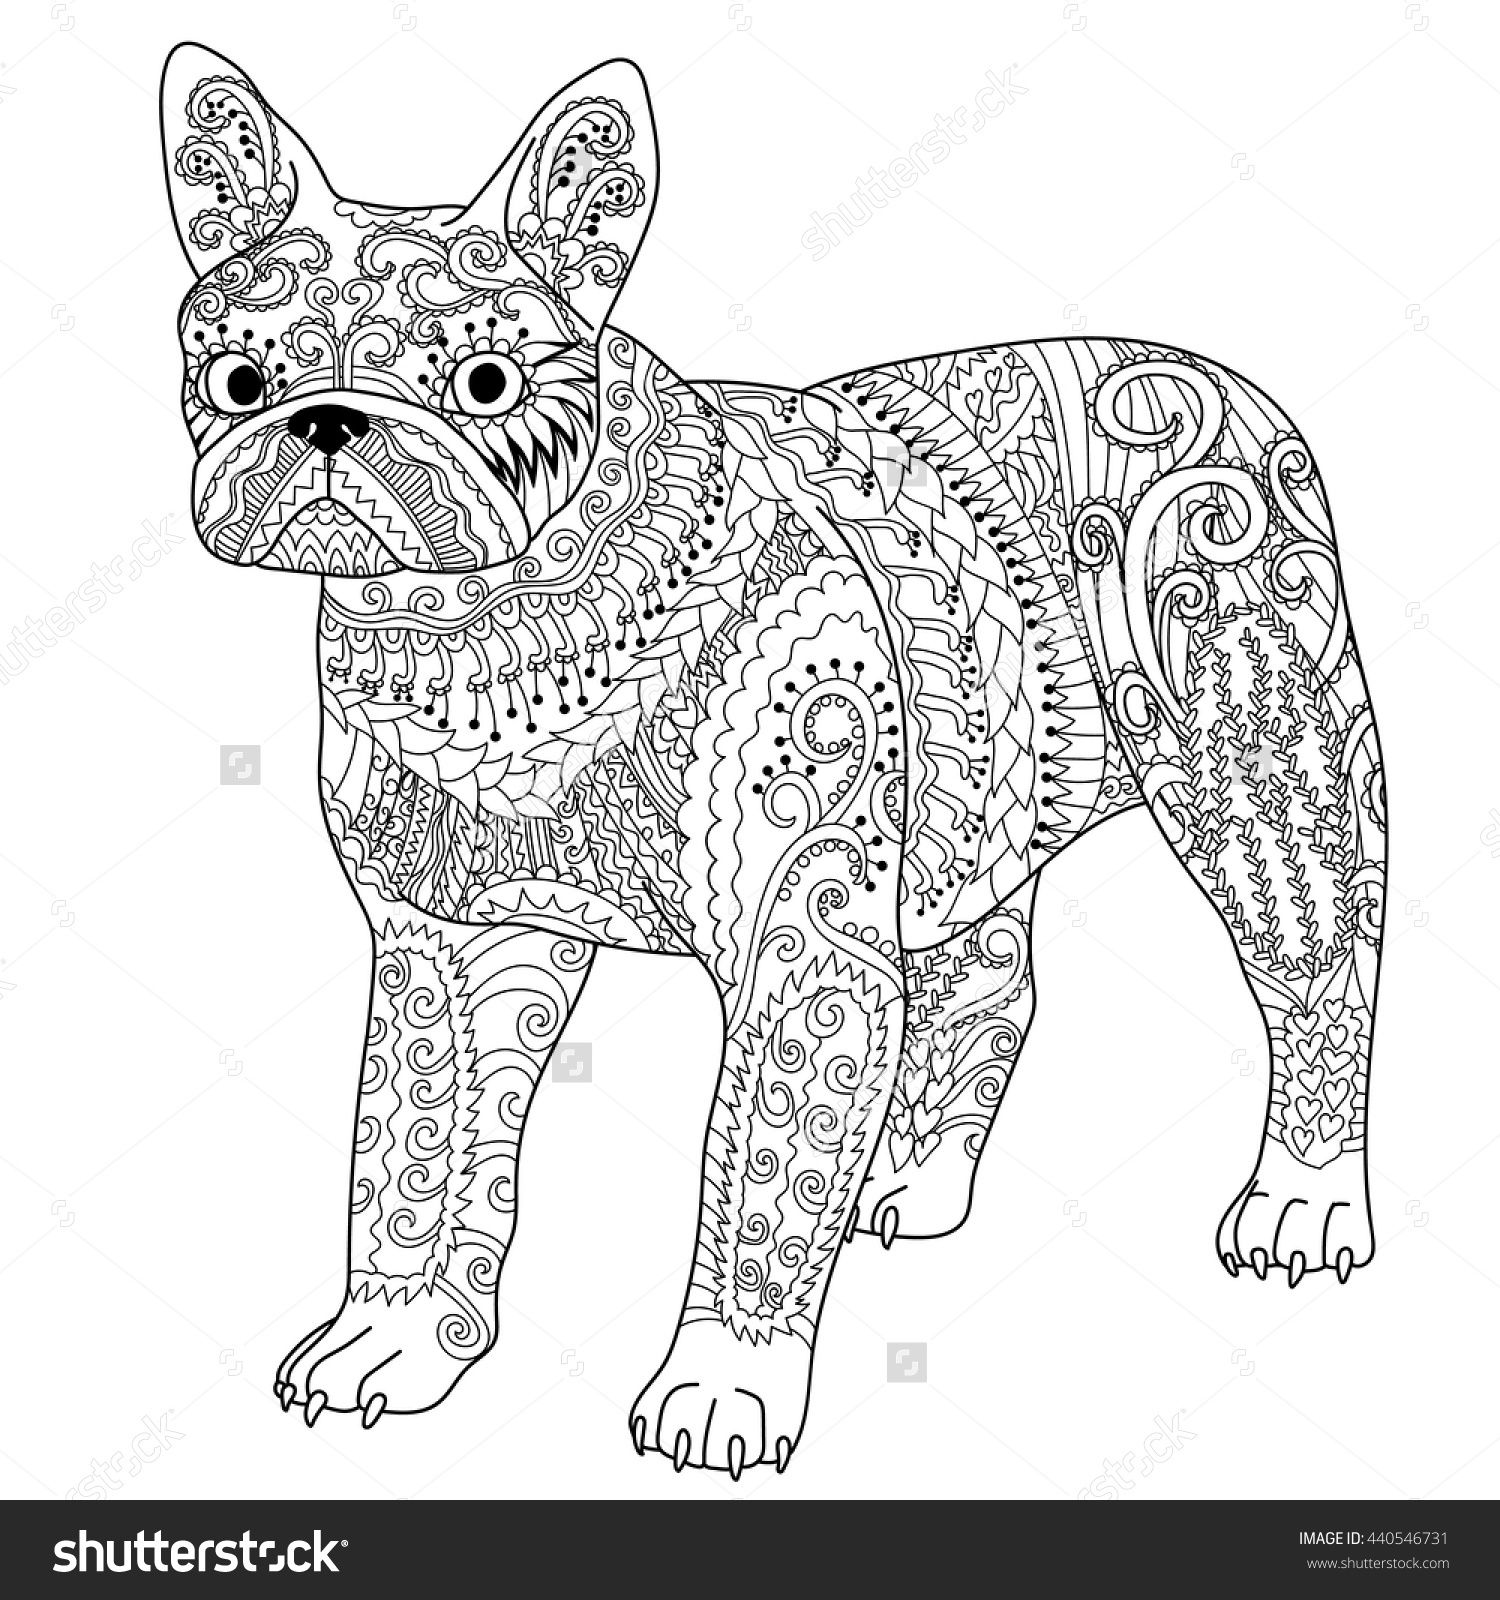 high detail patterned bulldog in zentangle style